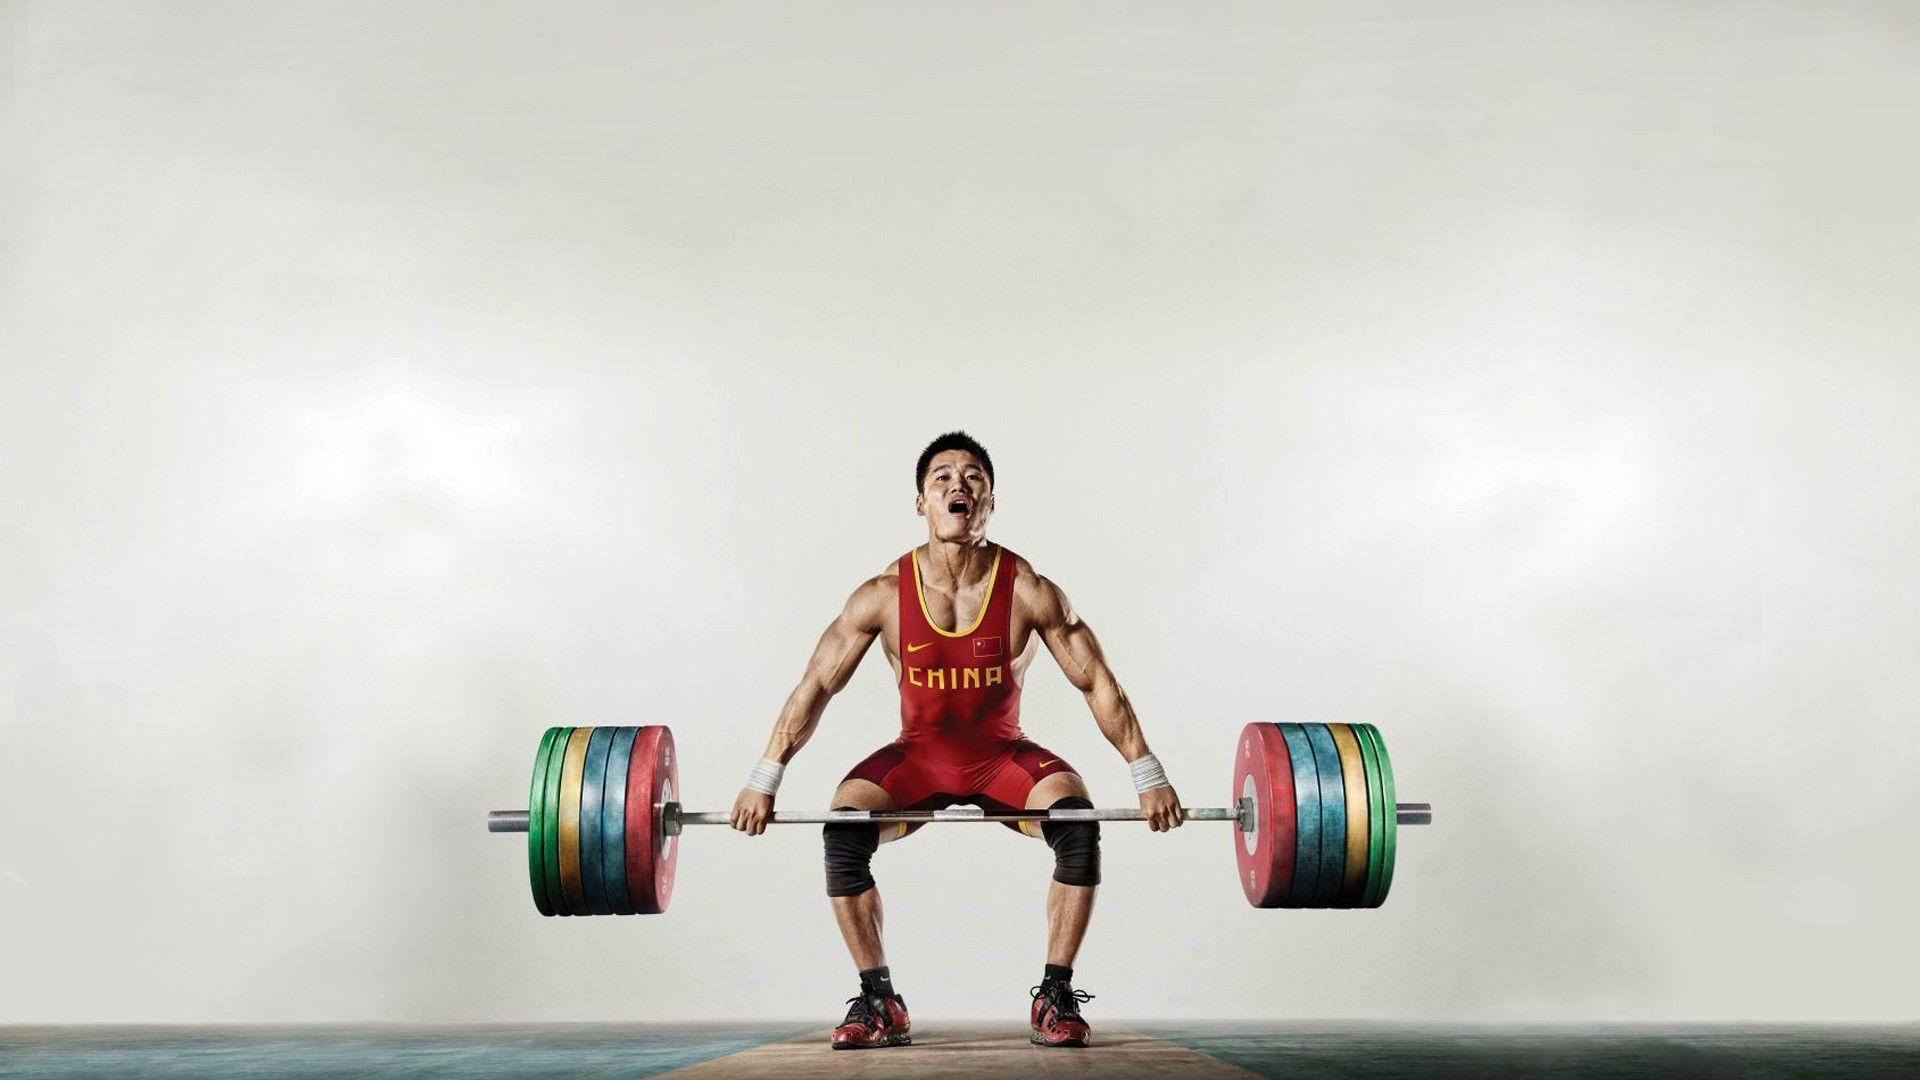 1920x1080 Wallpapers For > Olympic Weight Lifting Wallpaper